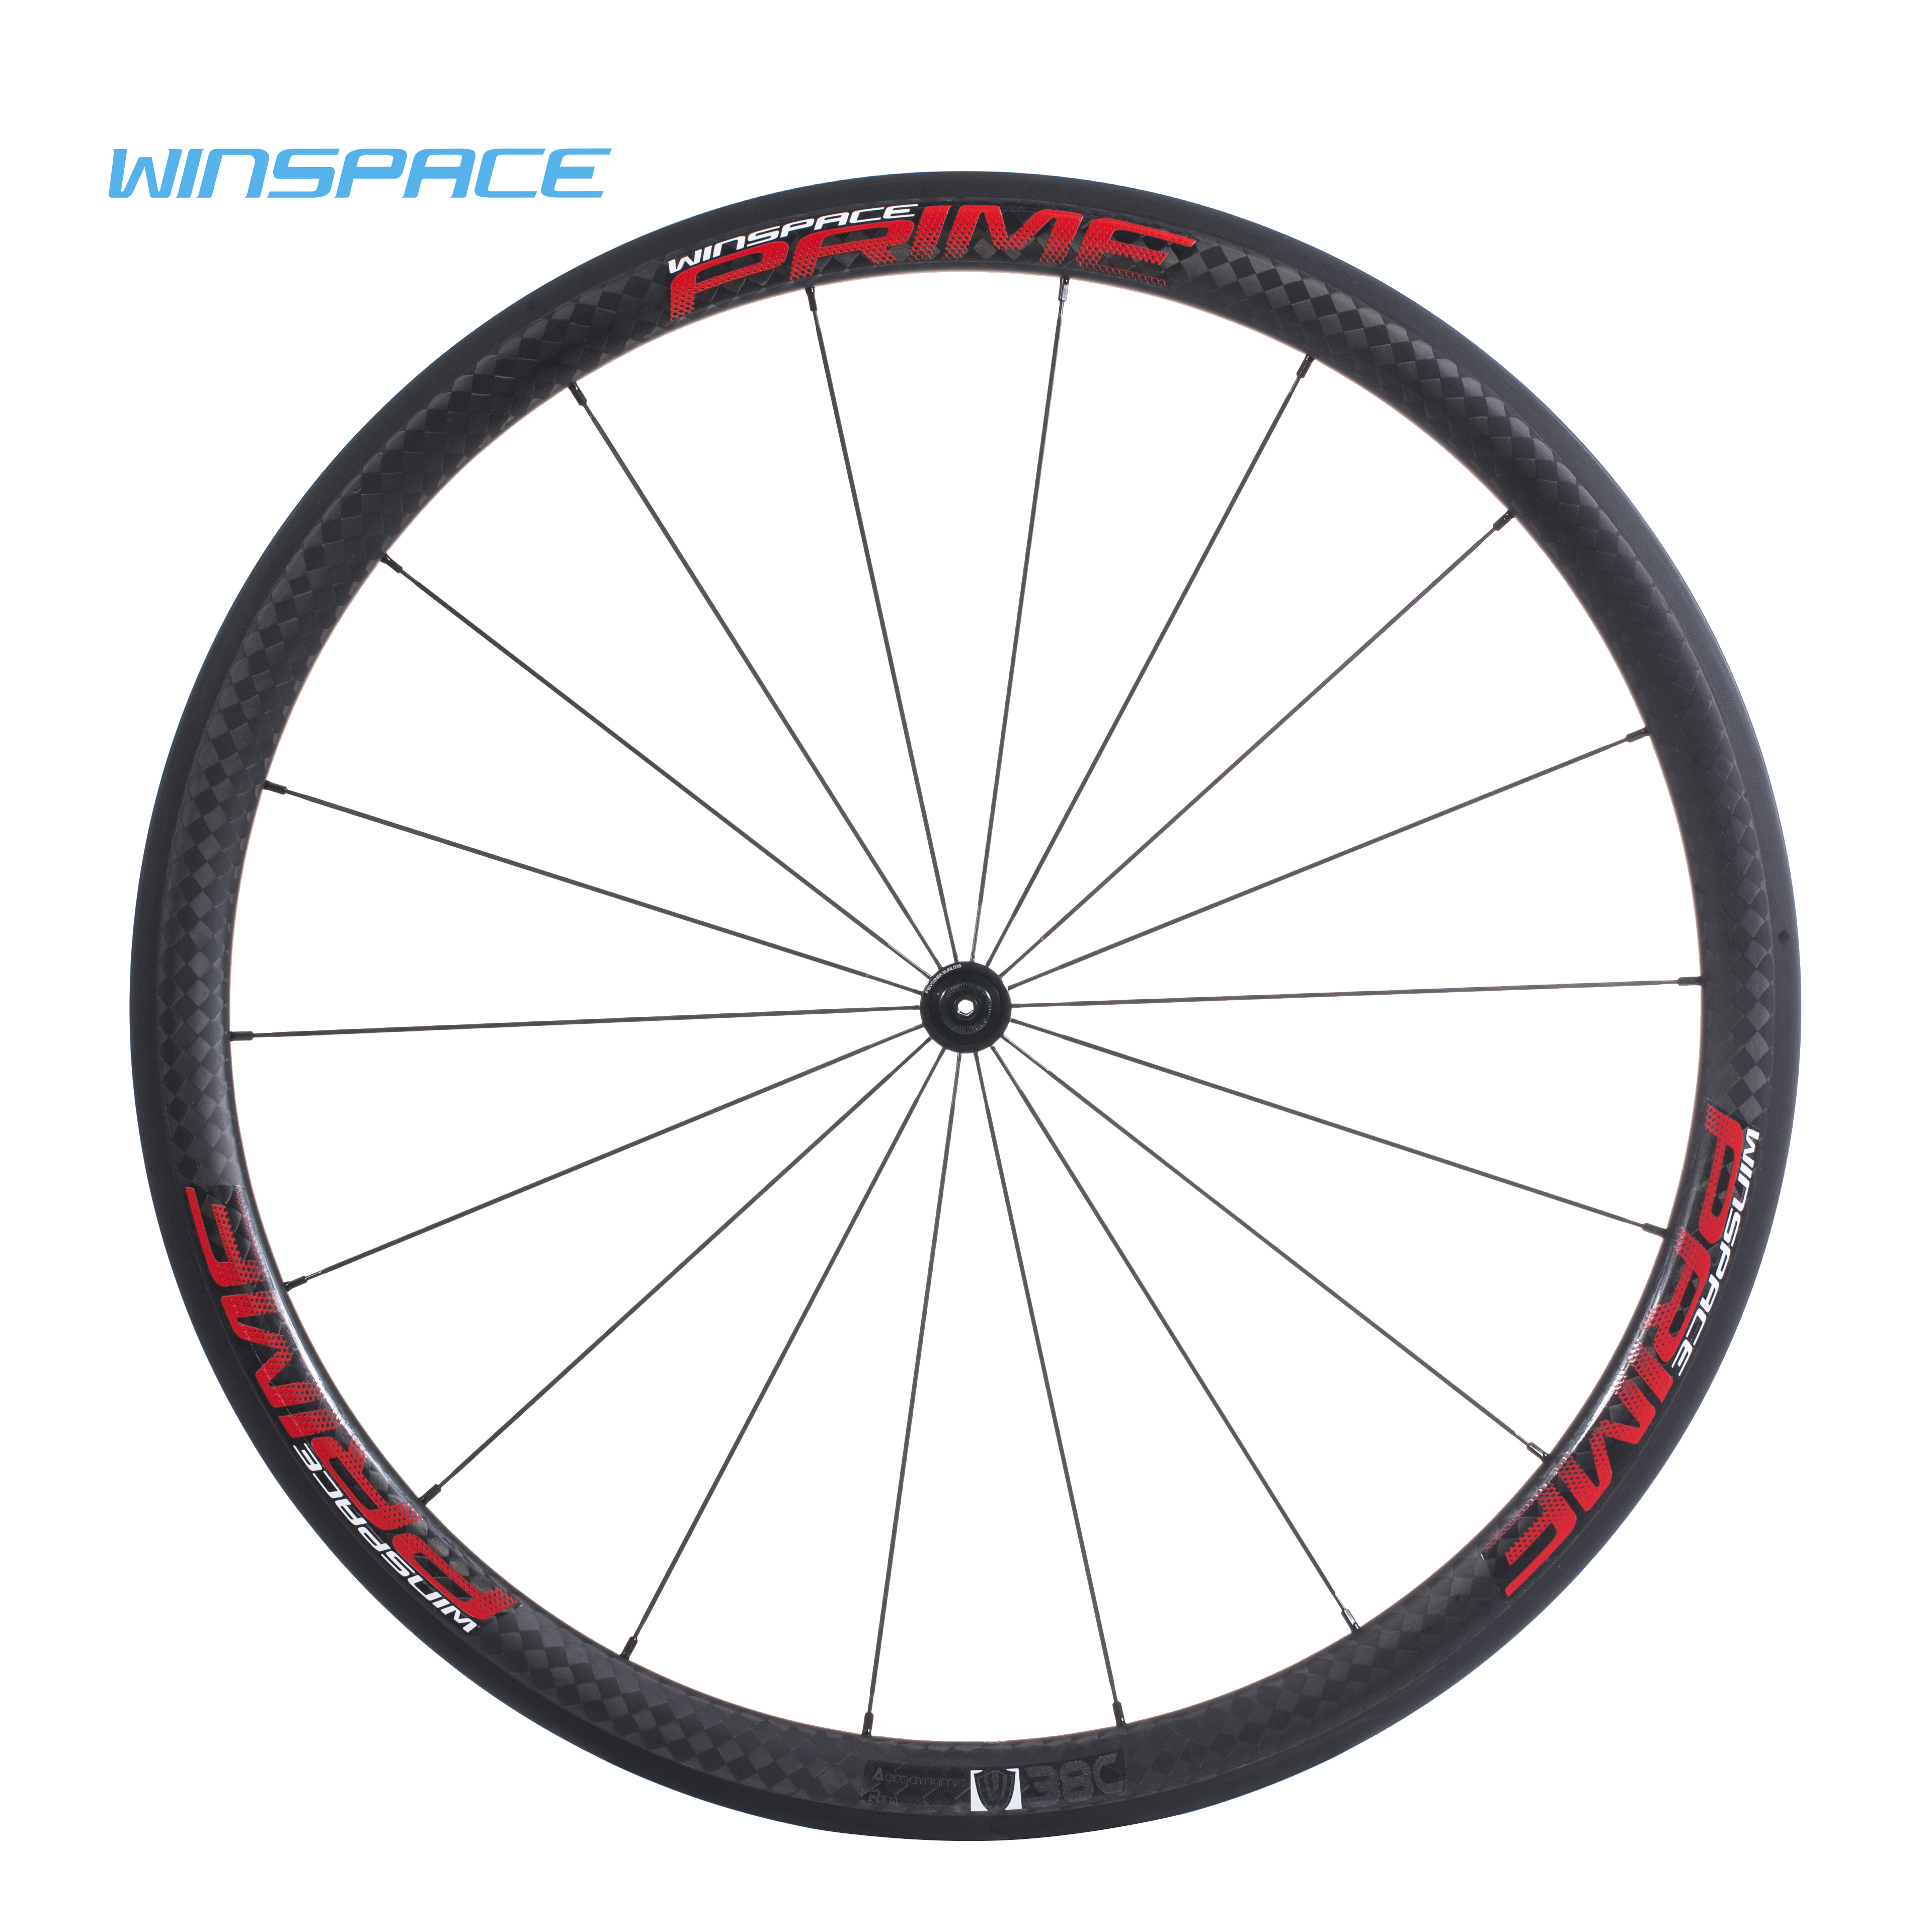 Winspace DT 350S Carbon Road Disc Brake Bike Wheel 25mm Width Tubular Clincher Tubeless 700c Full Carbon Fiber Bicycle Wheelset